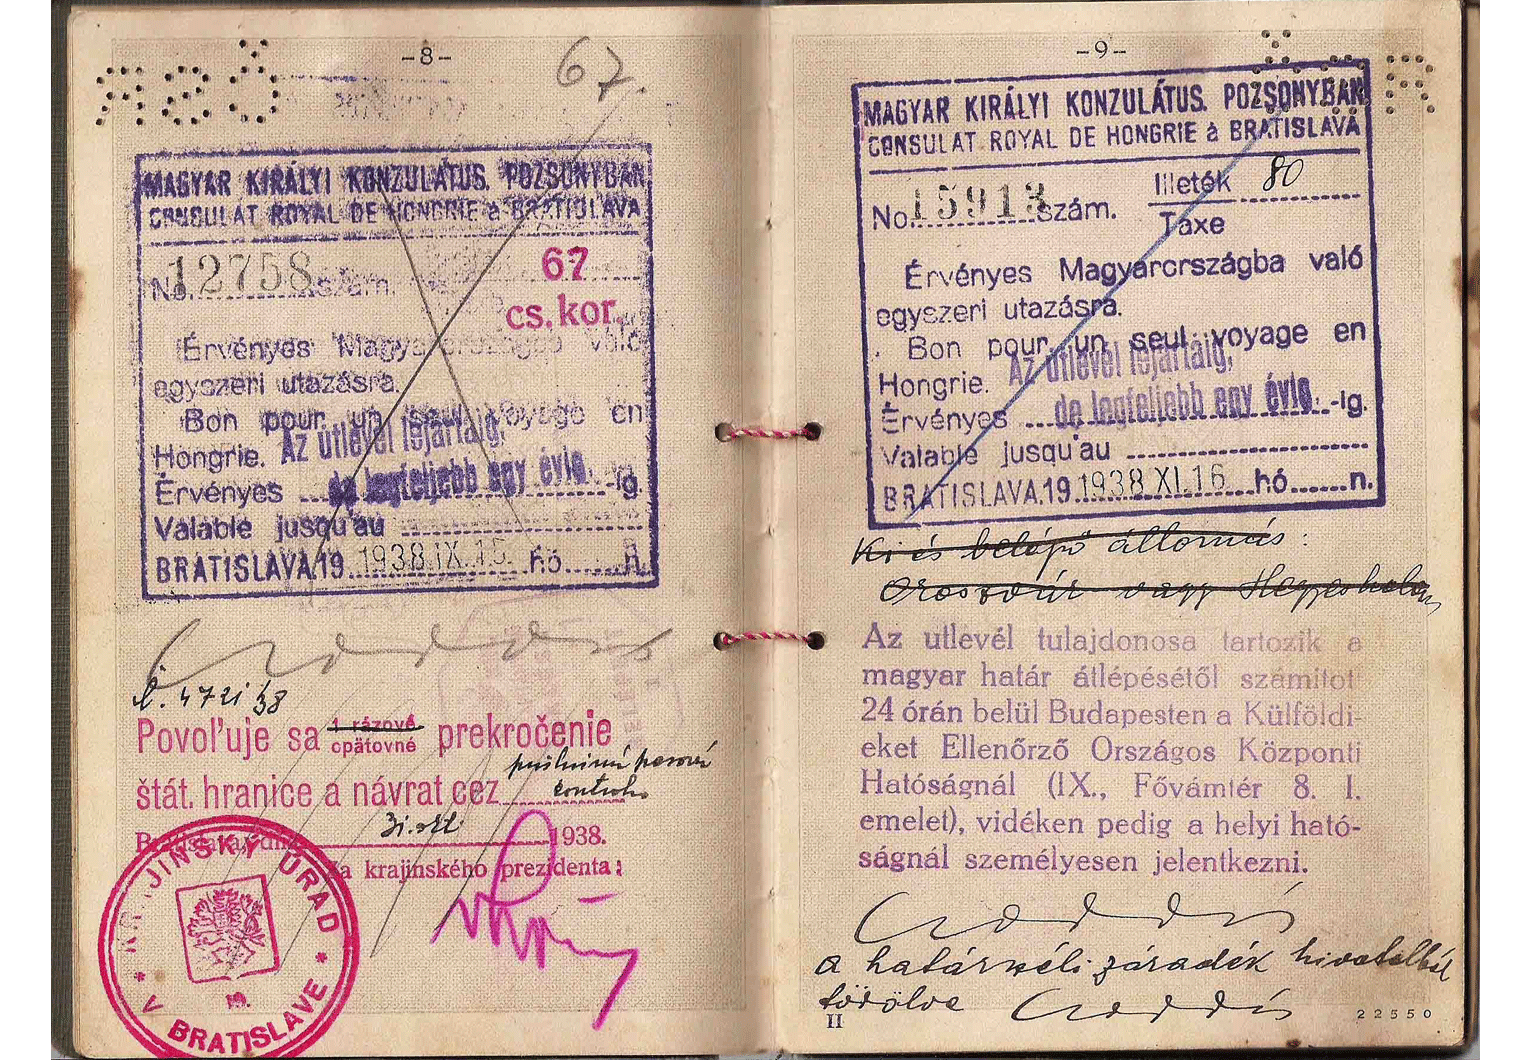 WW2 Czechoslovakia passport